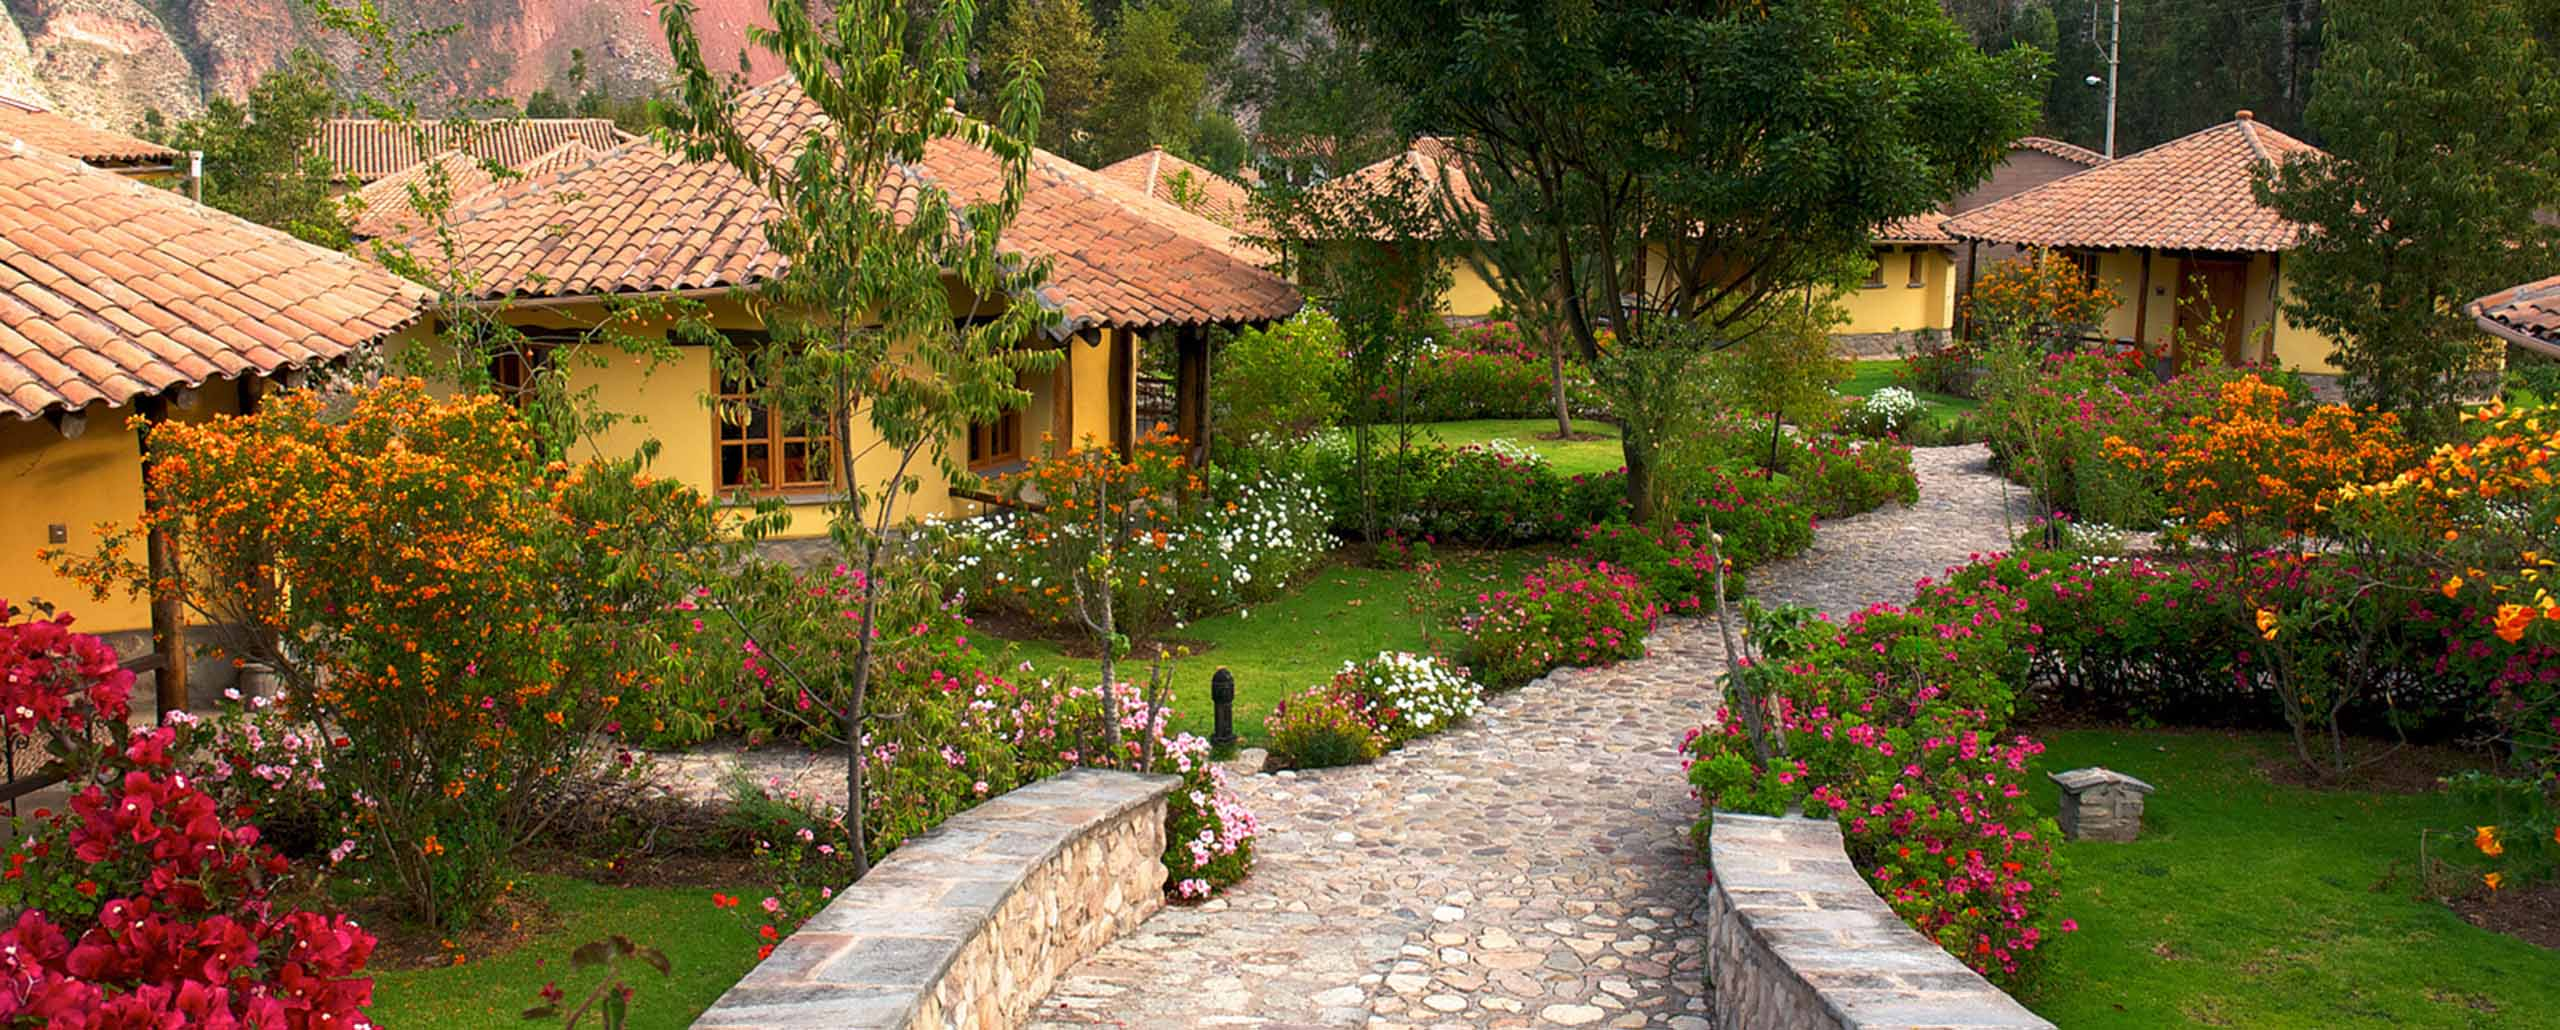 My magical stay at Sol y Luna in Peru's Sacred Valley